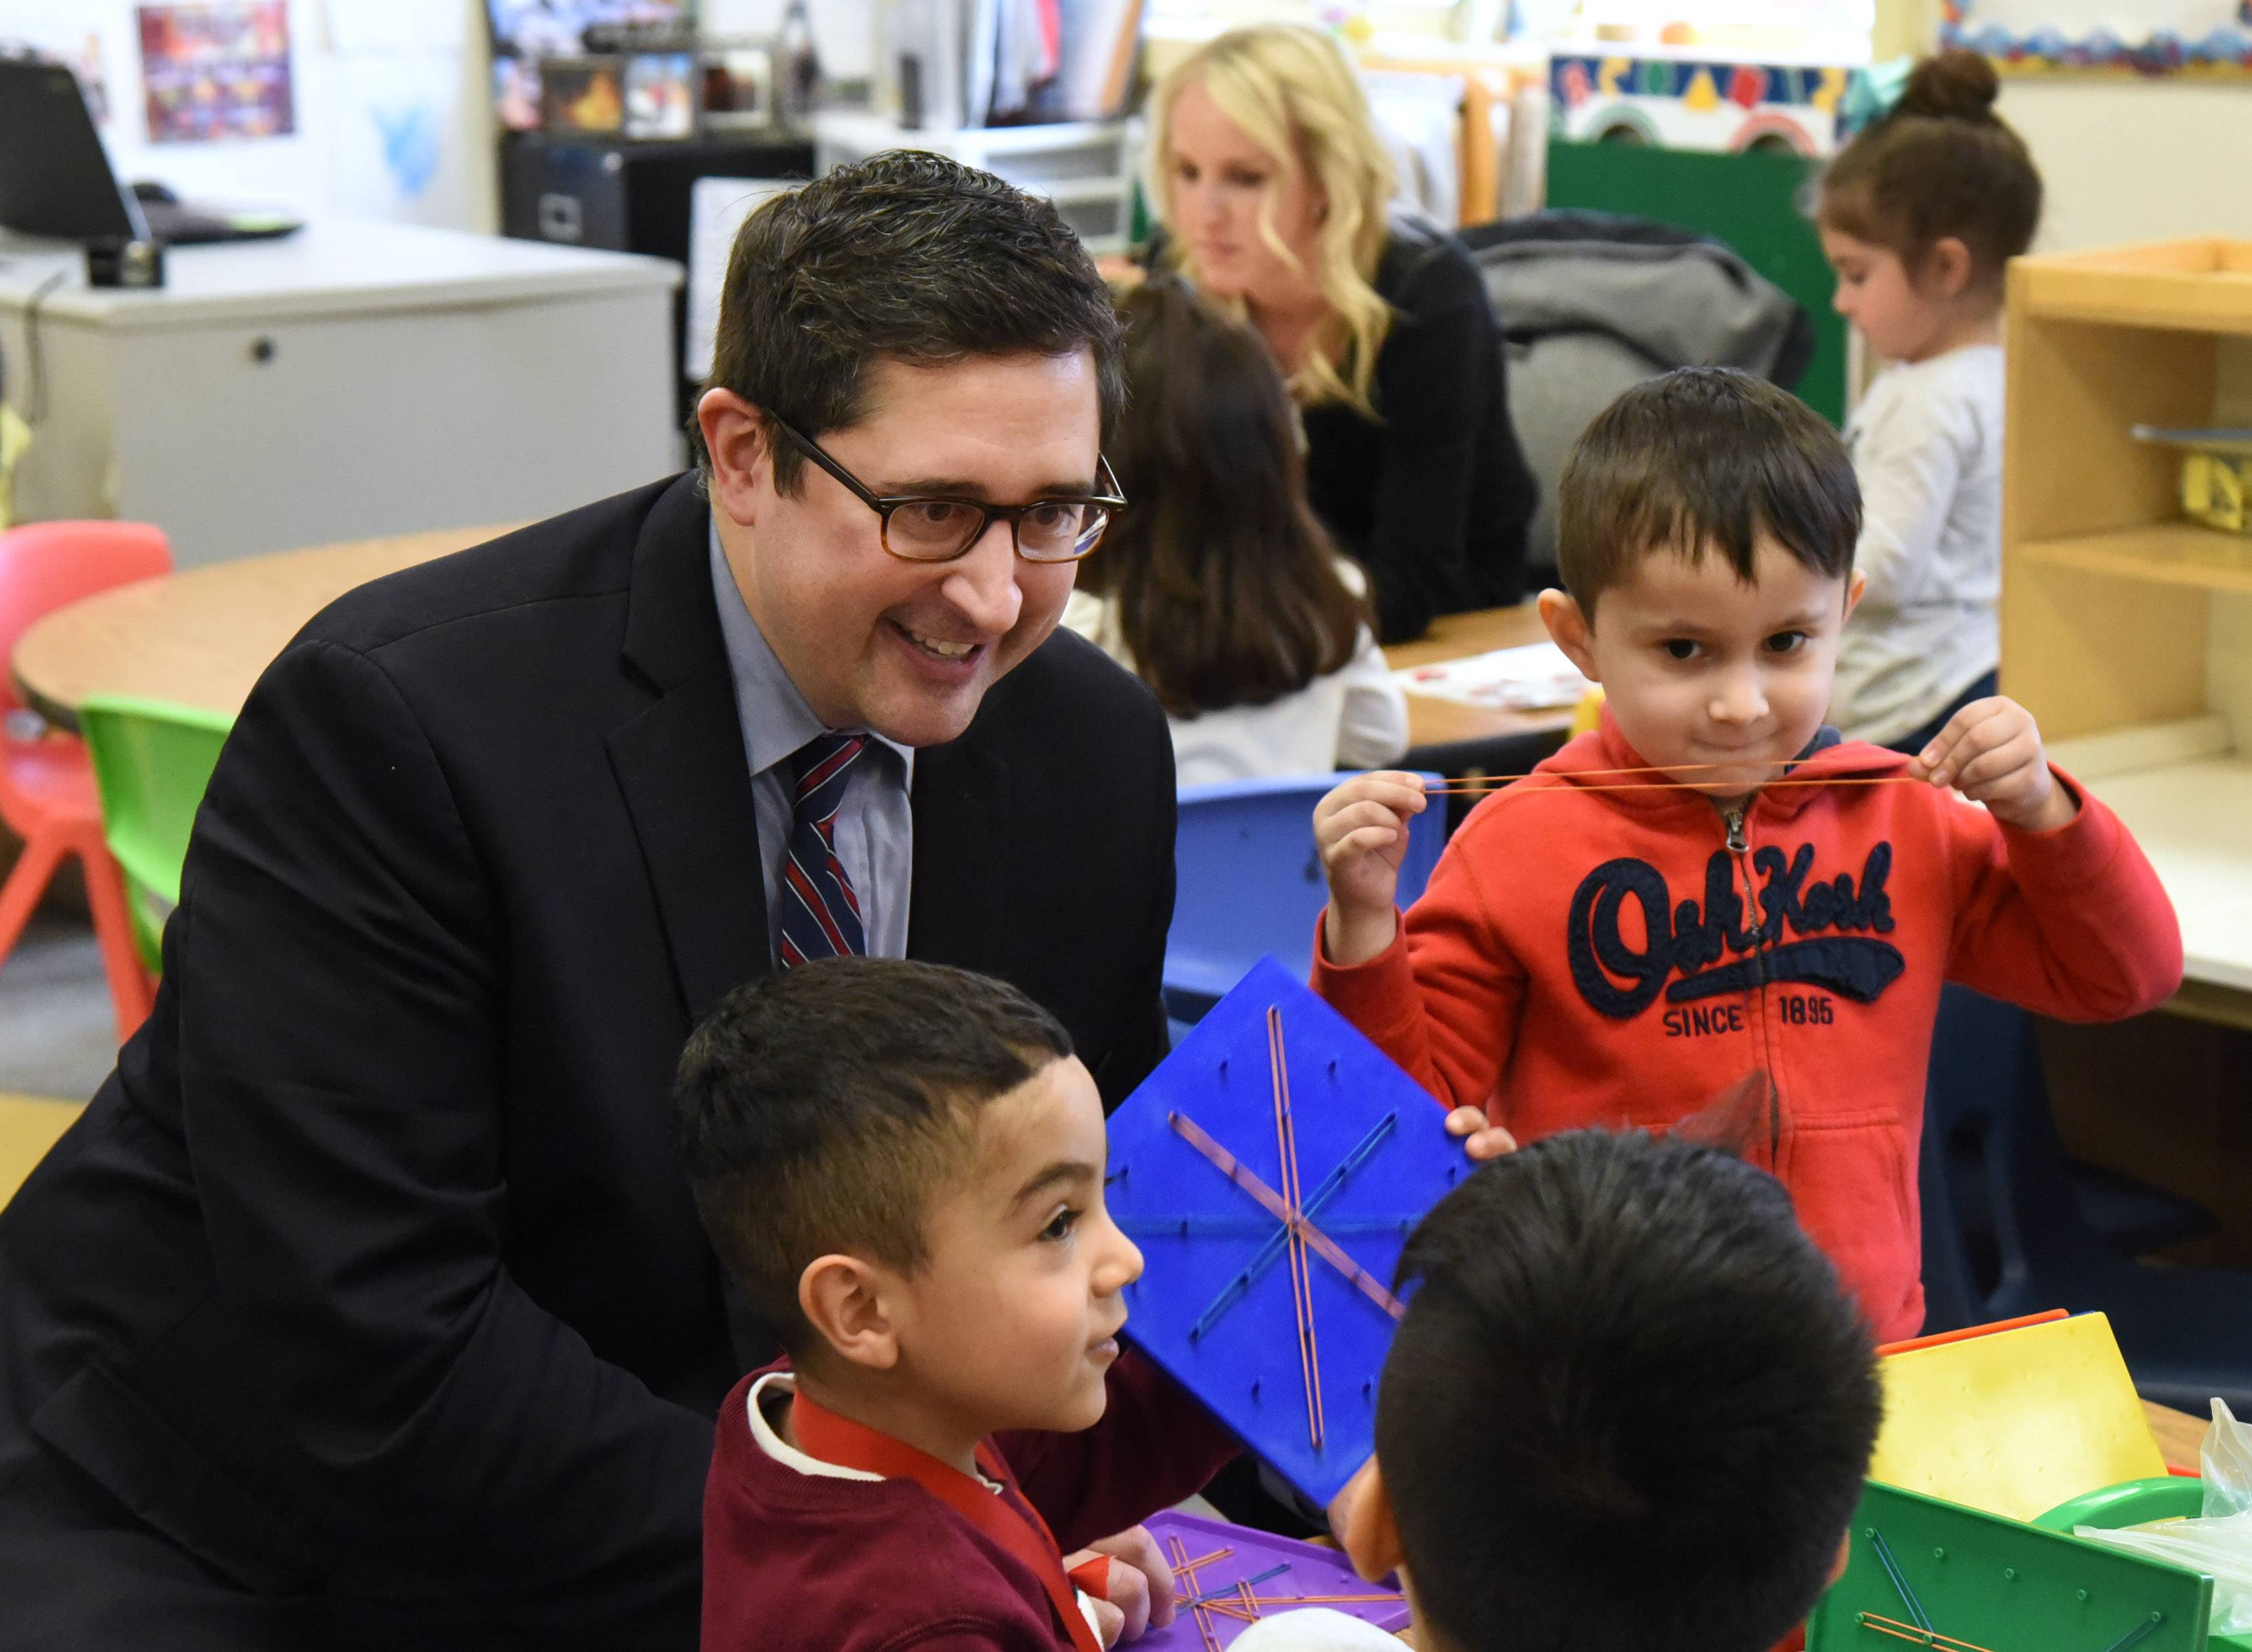 Democratic state Rep. Sam Yingling of Grayslake, left, talks to students in the preschool classroom of Kali Skiles, rear, during Tuesday's visit to the Round Lake Early Education Center.